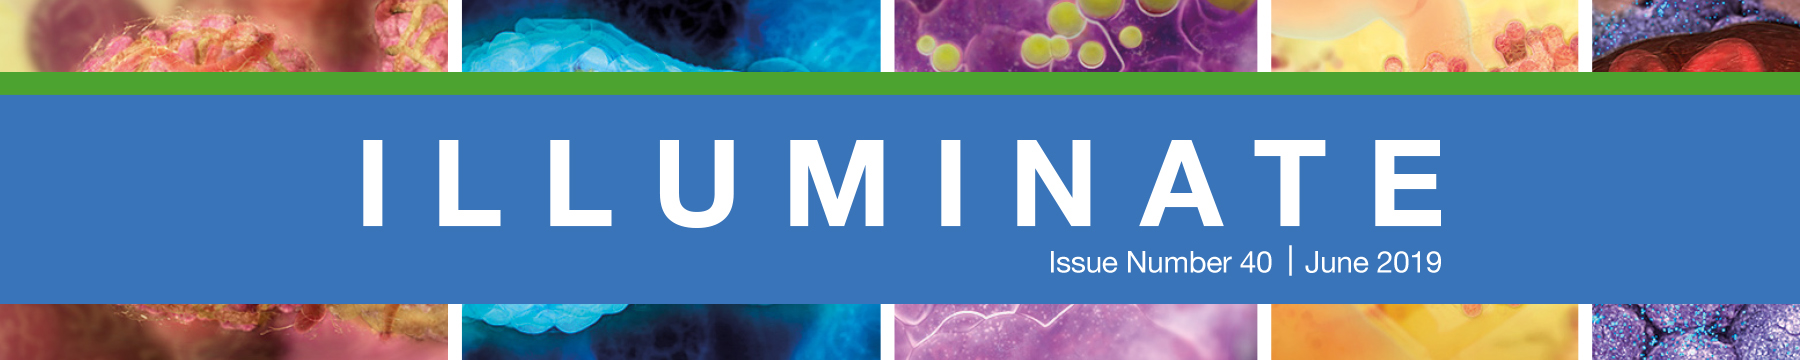 Illuminate newsletter index page, June 2019